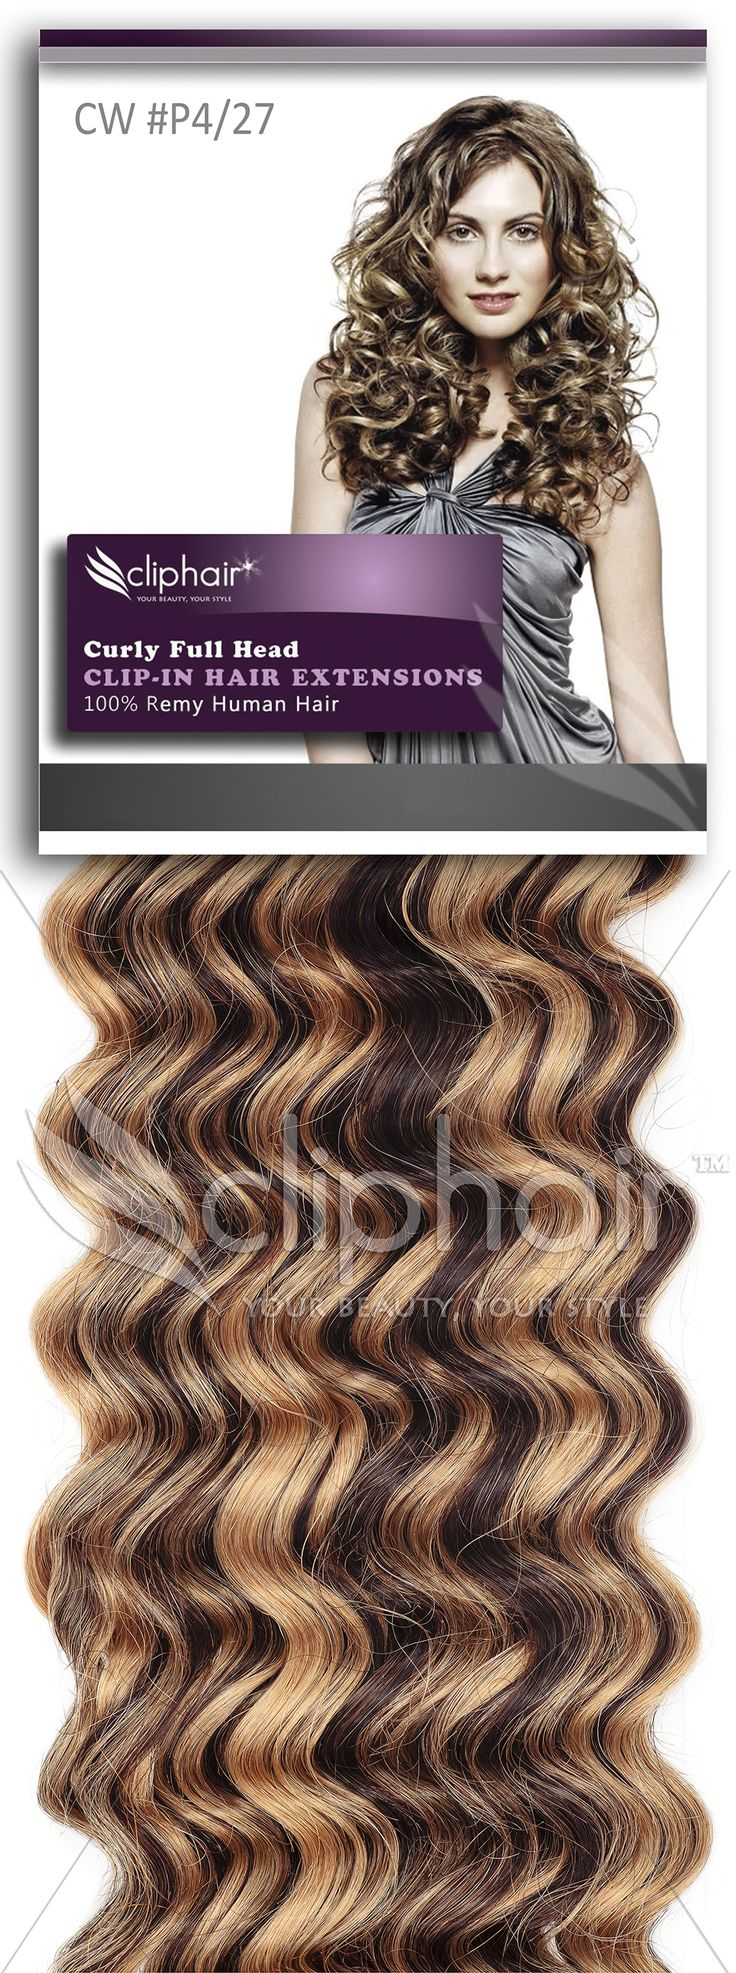 Straight perm yahoo answers -  P Our Deep Curl Sets Are The Same High Quality As The Regular Clip